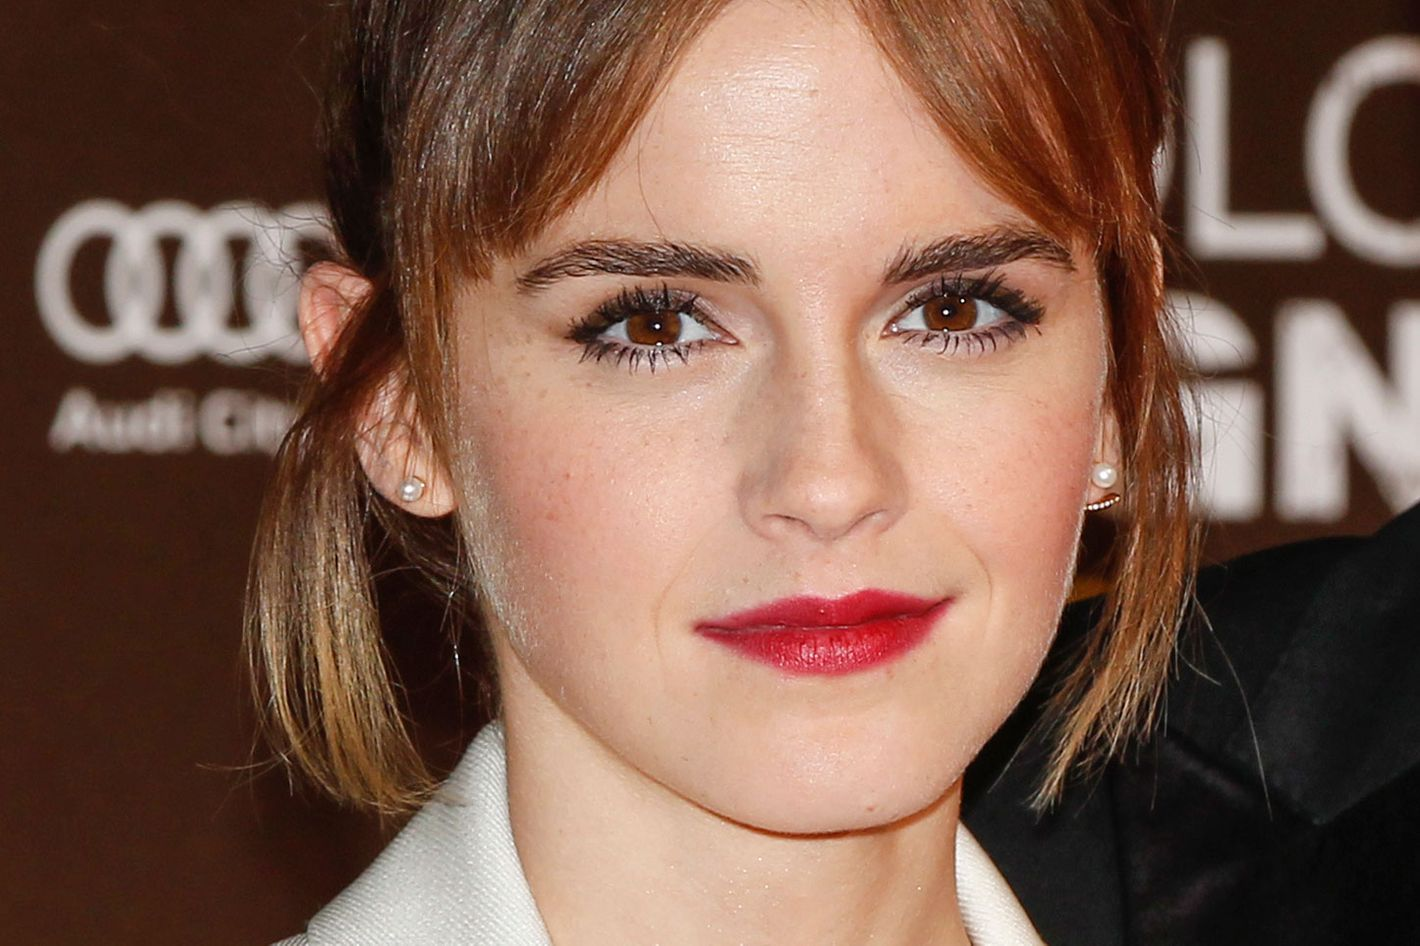 emma watson reportedly told website to take down racy pics